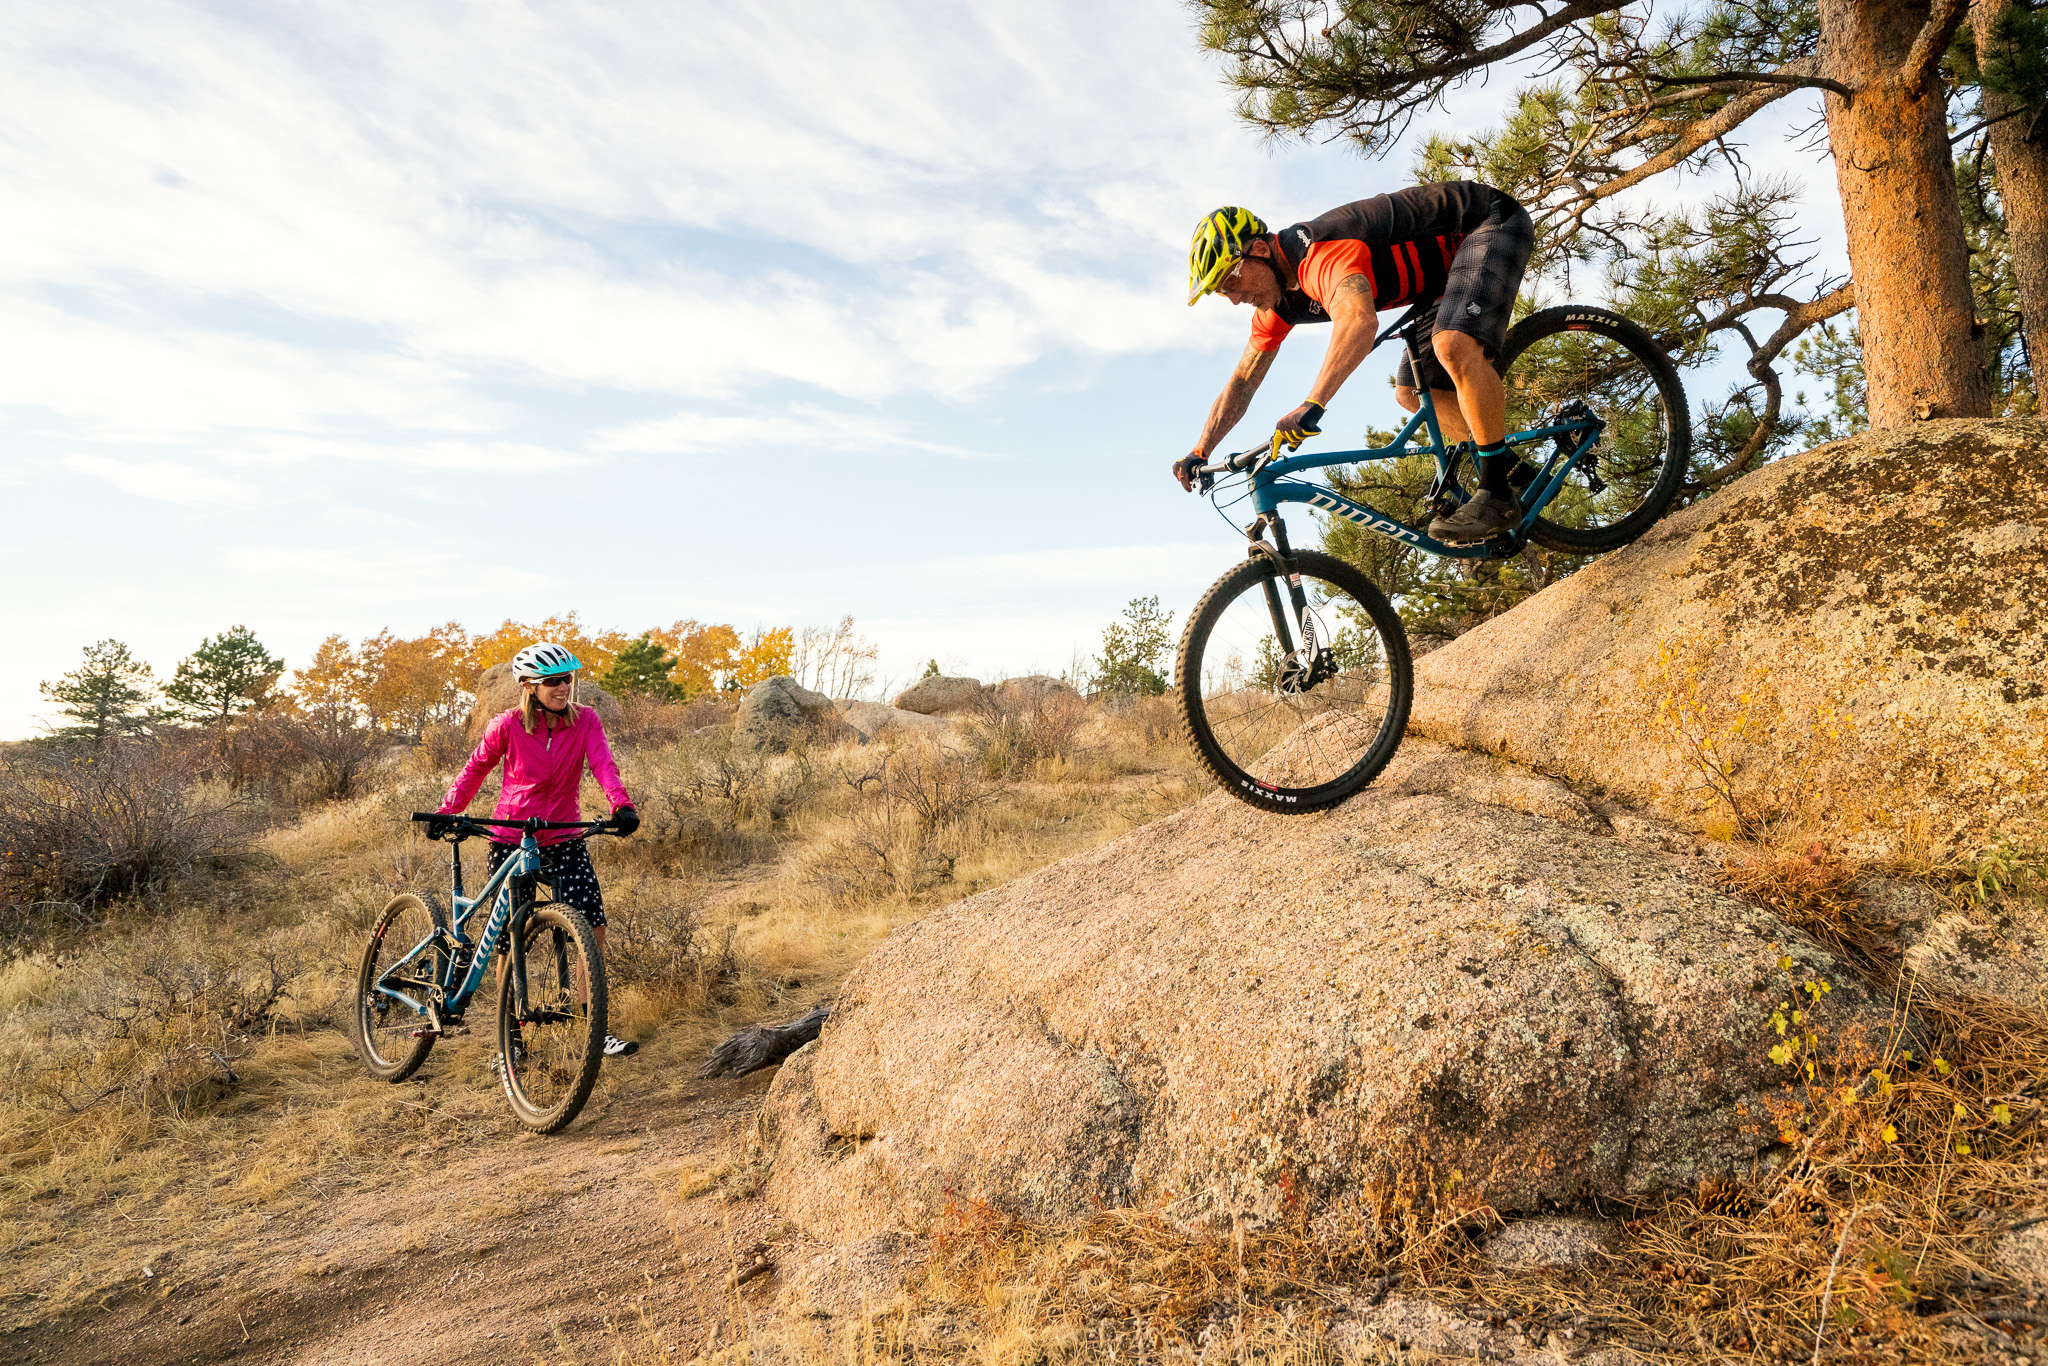 DO YOU RIDE CROSS COUNTRY? OR TRAIL? UNDERSTANDING DIFFERENT TYPES ...